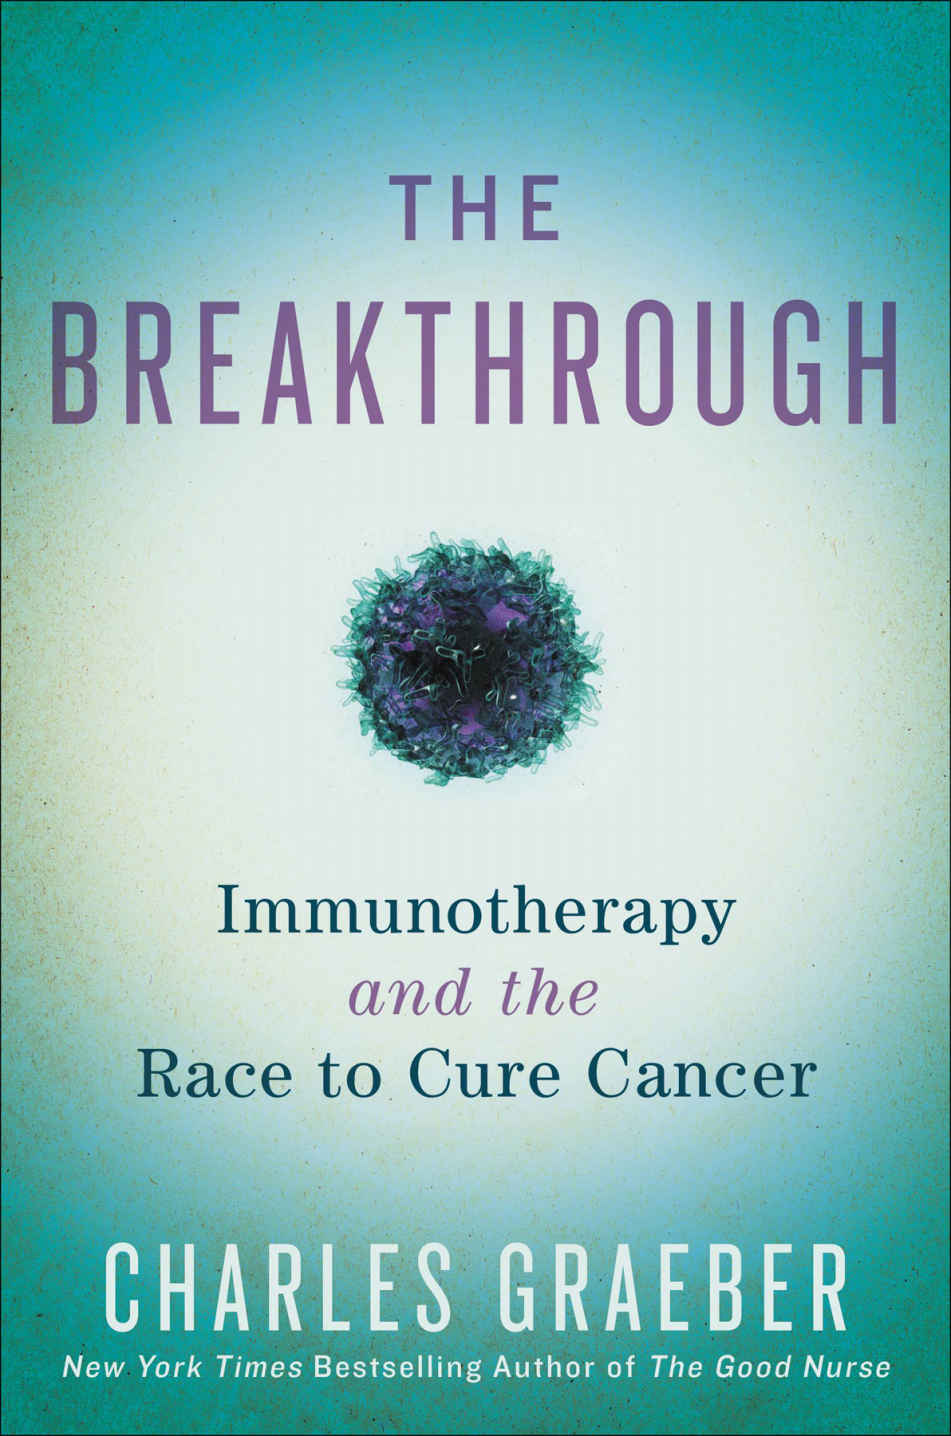 ashclinicalnews.org - ajones - Off to the Races: The Breakthroughs of Immunotherapy